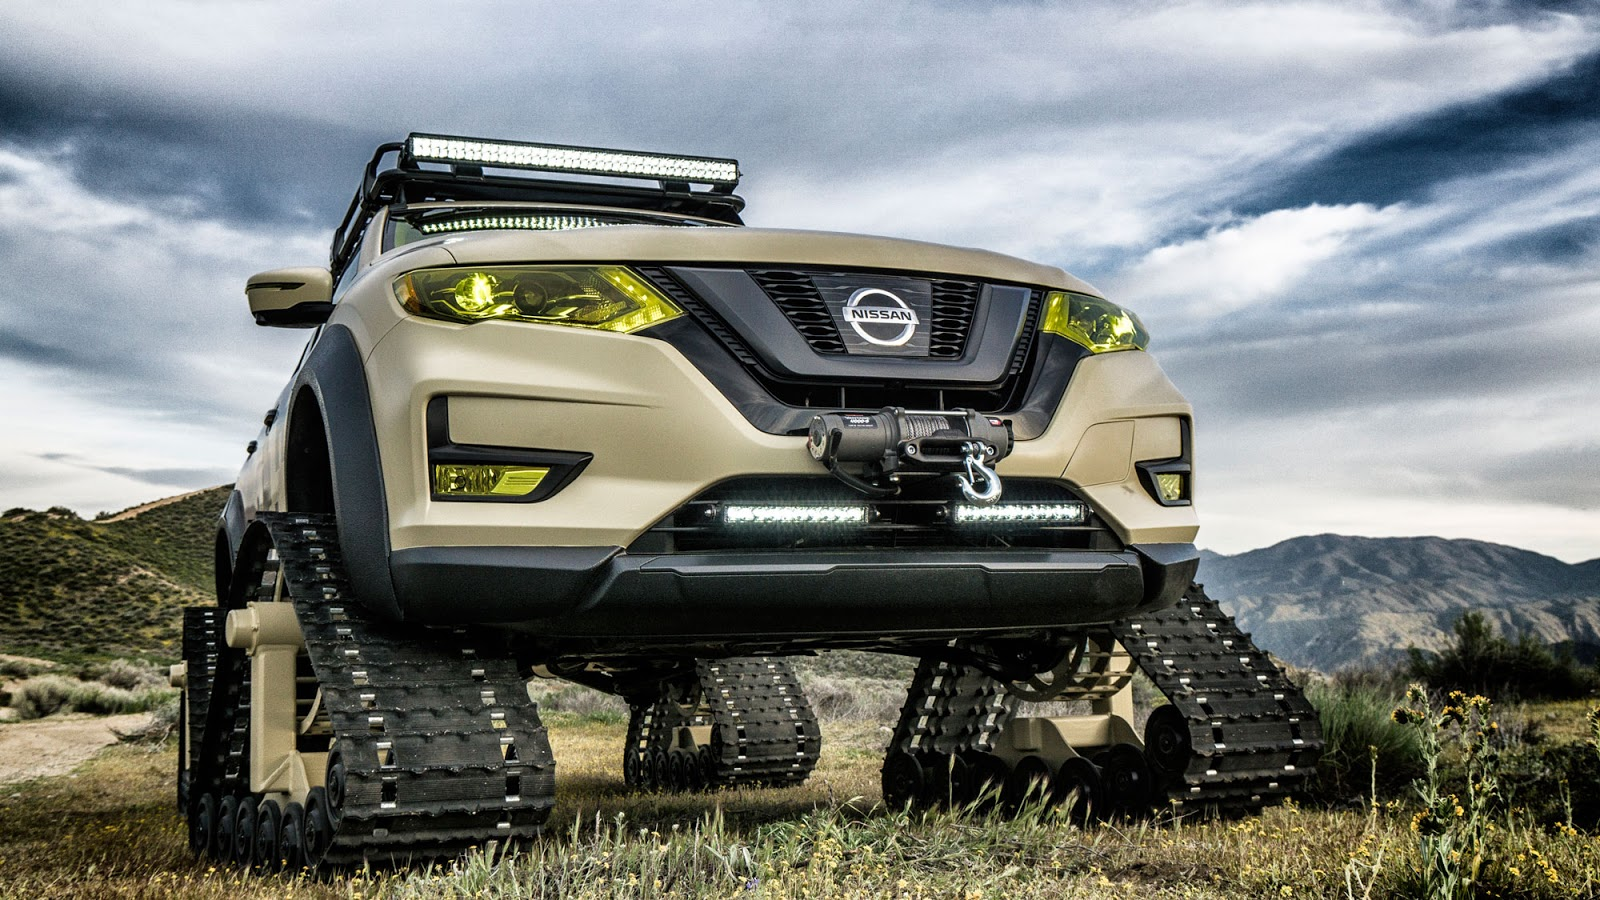 Nissan Rogue Trail Warrior Project 10 rs Nissan Rogue Trail Warrior Project : Το X-trail του... Ράμπο Fun, Nissan, Nissan Rogue, Nissan Rogue Trail Warrior Project, Nissan X-trail, Prototype, SUV